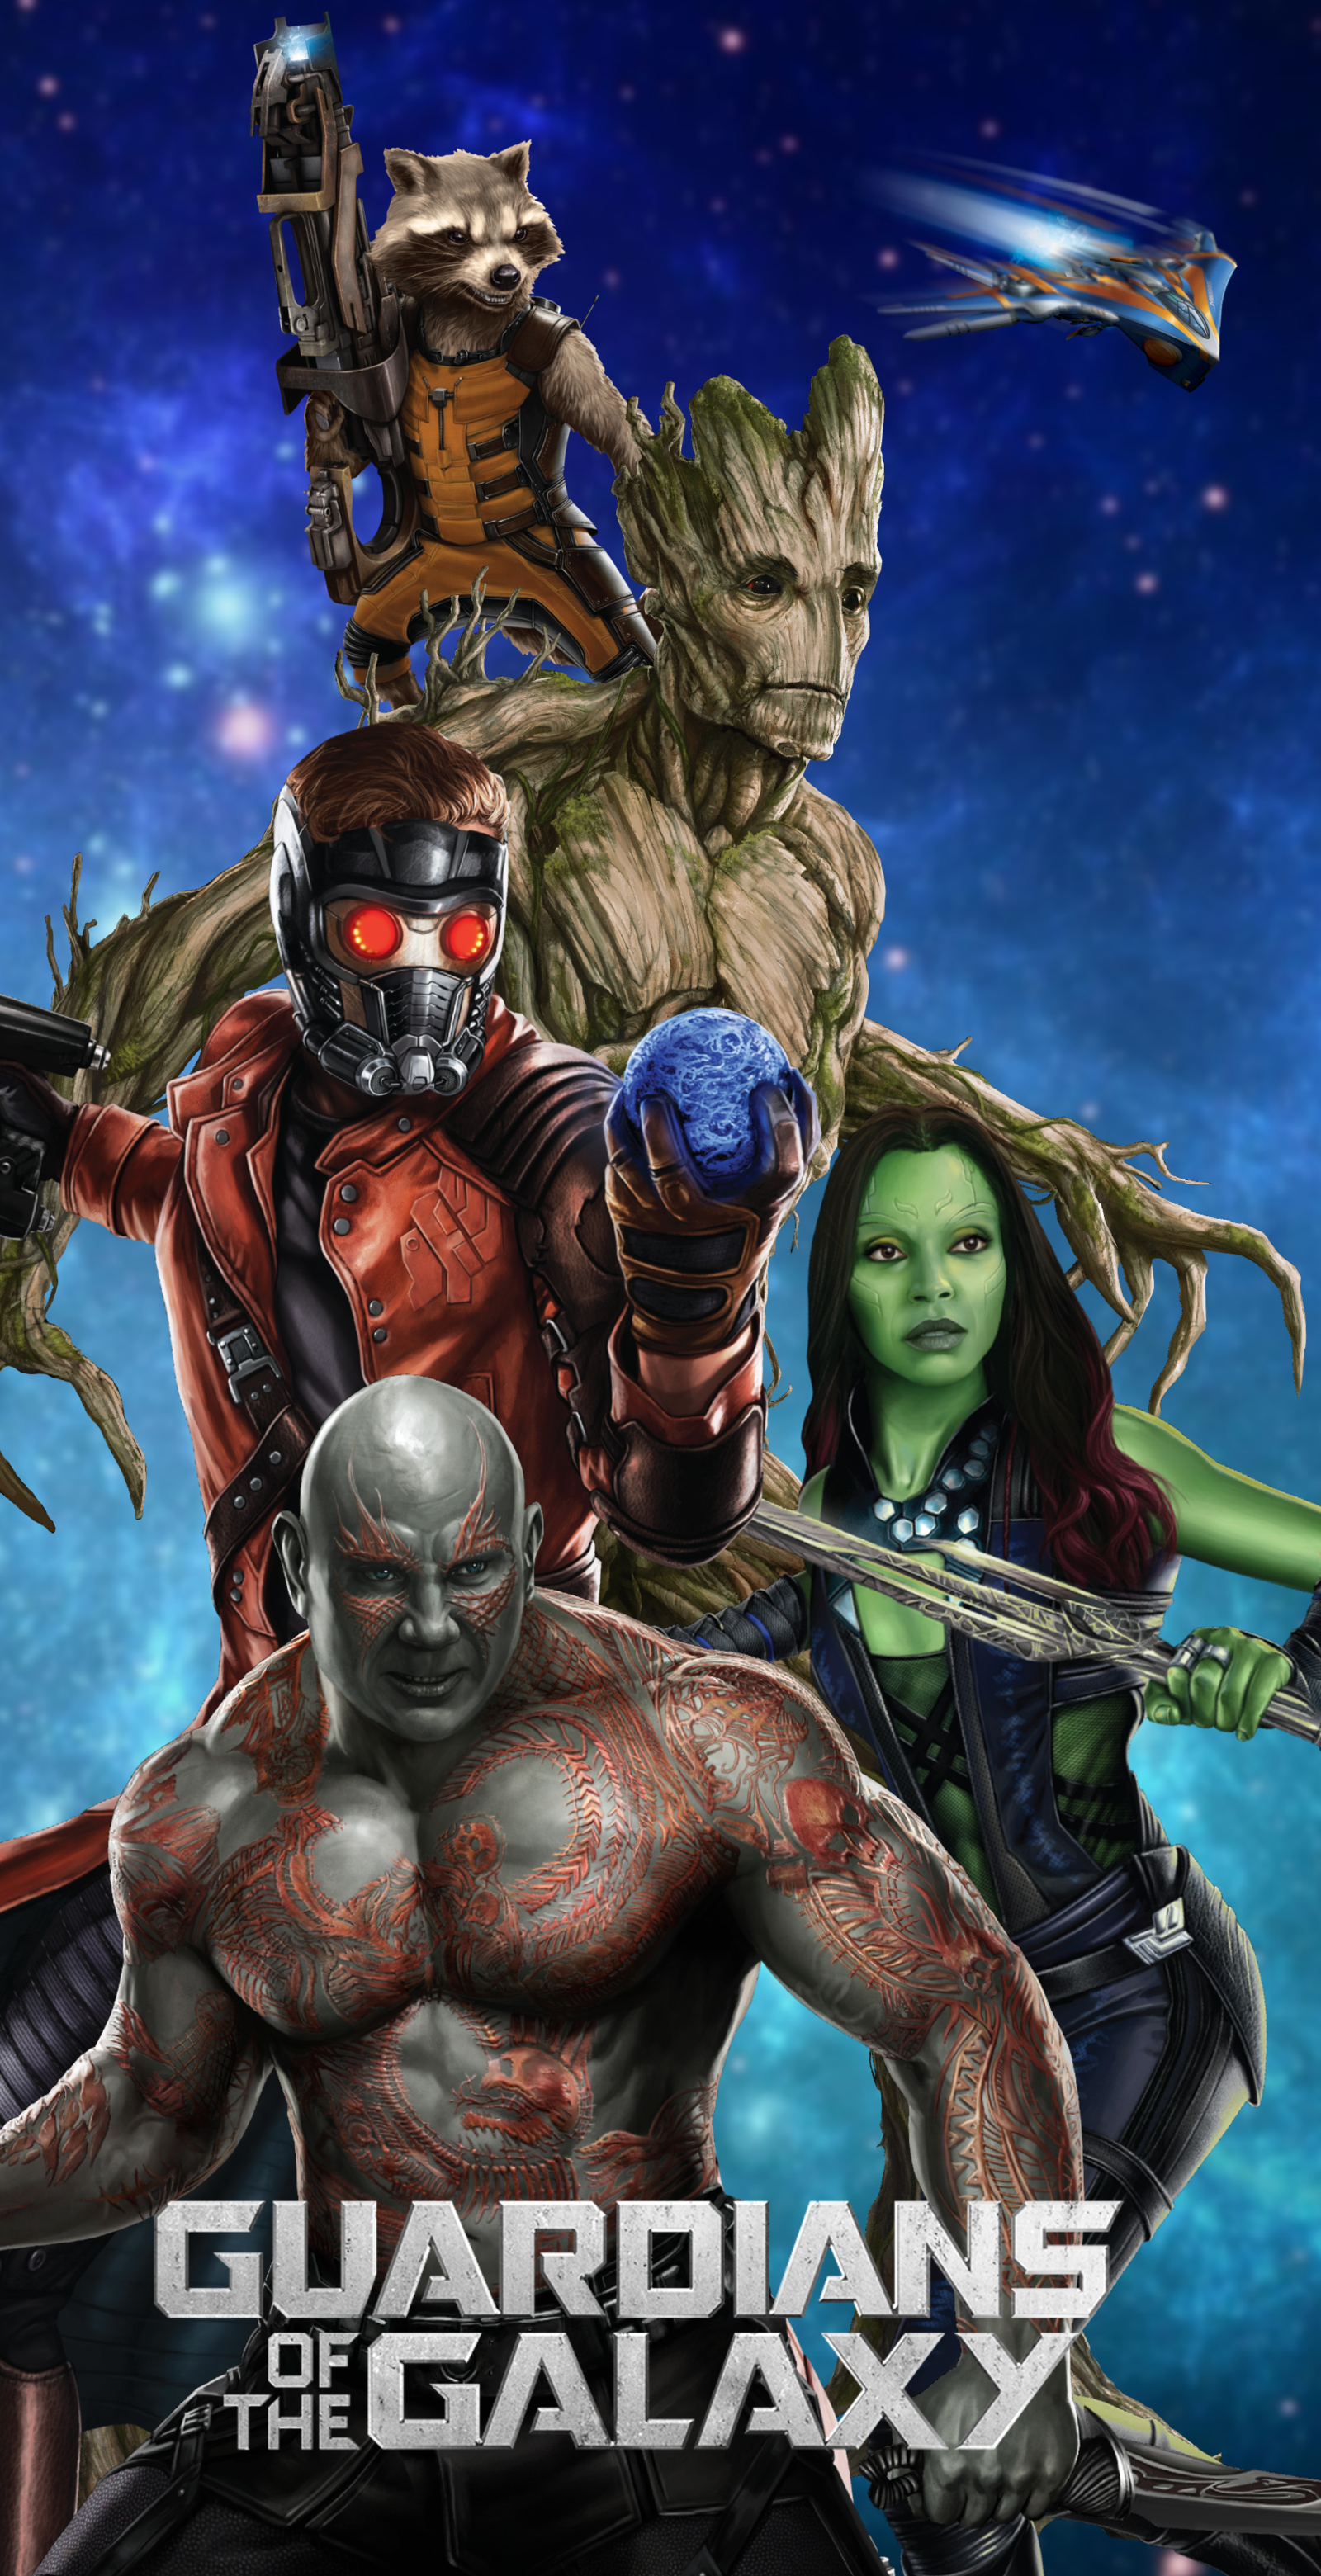 Guardians of the Galaxy wallpaper by ArkhamNatic 1600x3121